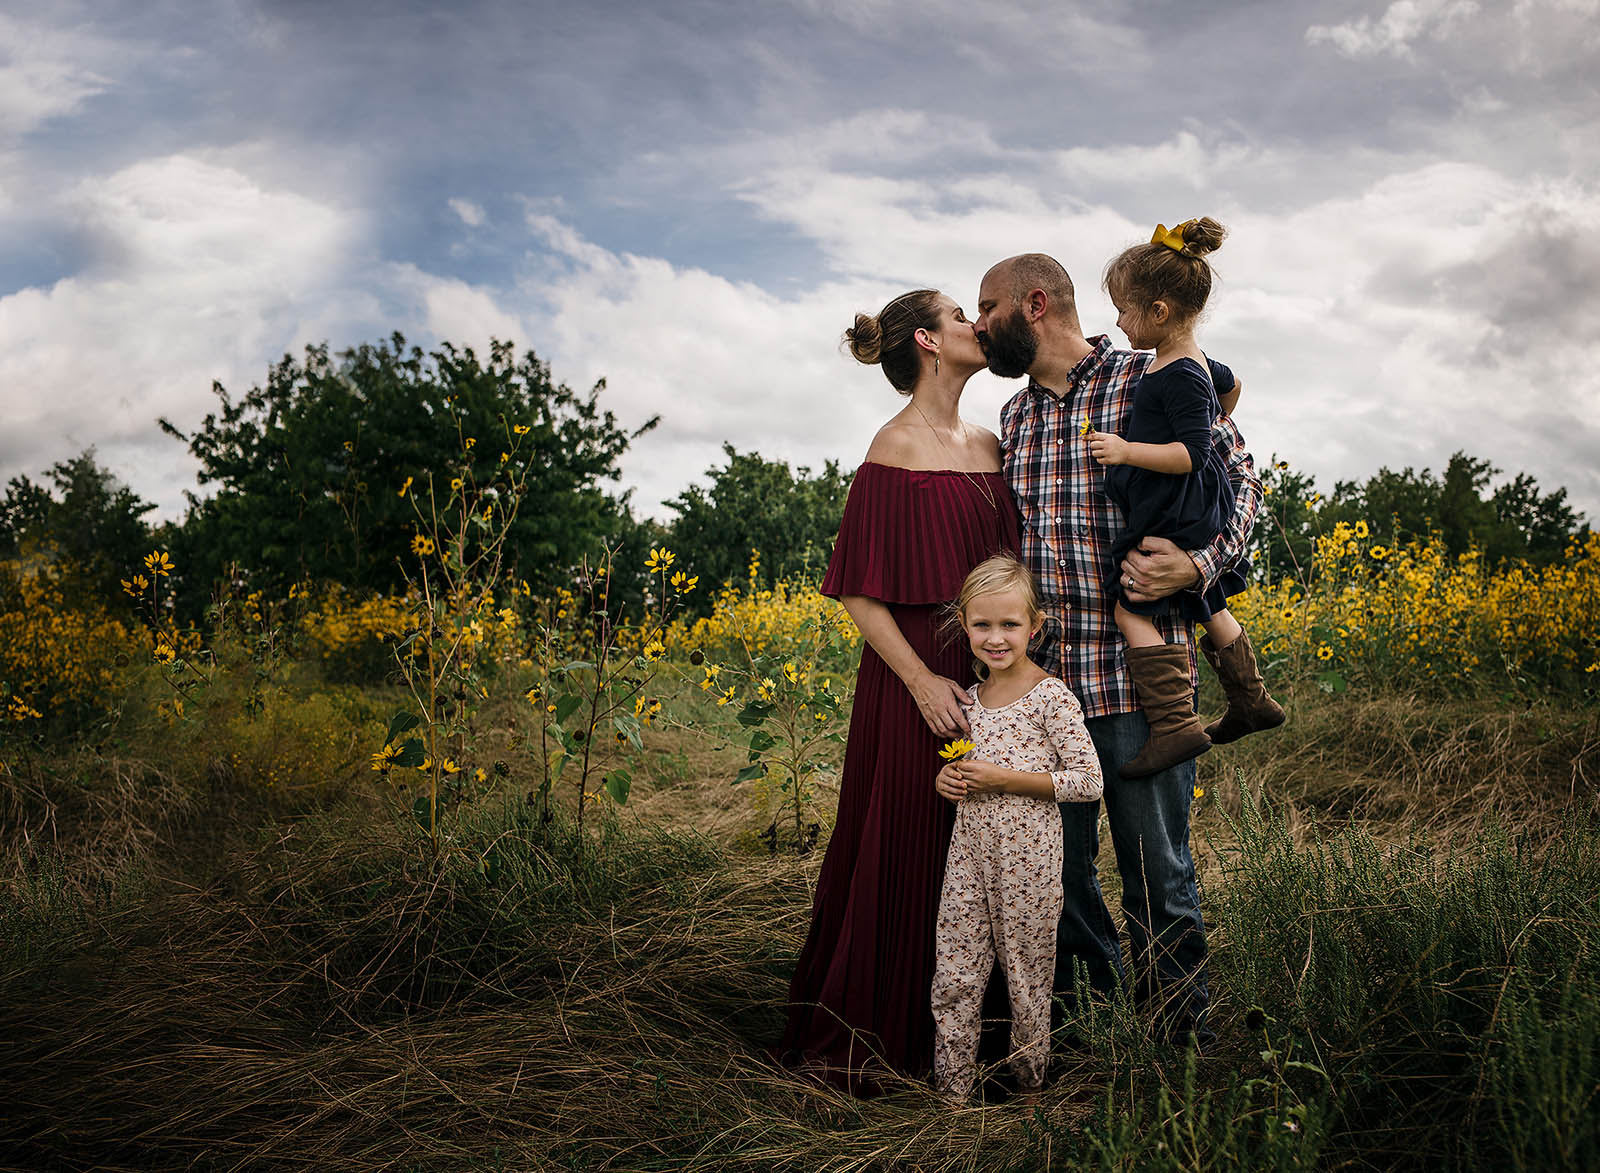 A family stands in a field of flowers in this printed photo